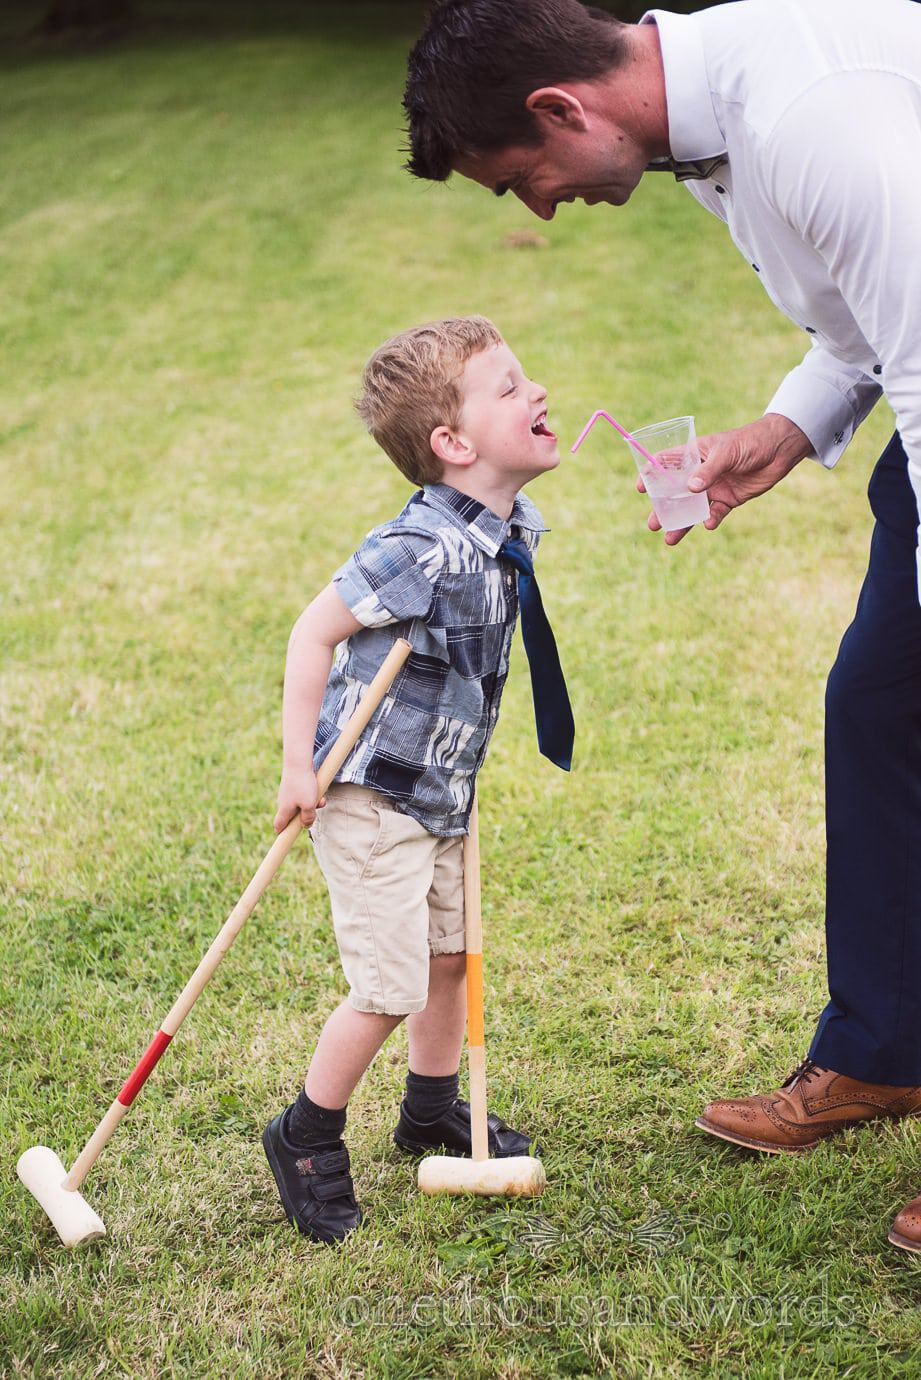 Father jokes around with son with croquet mallets at rustic barn wedding in the countryside